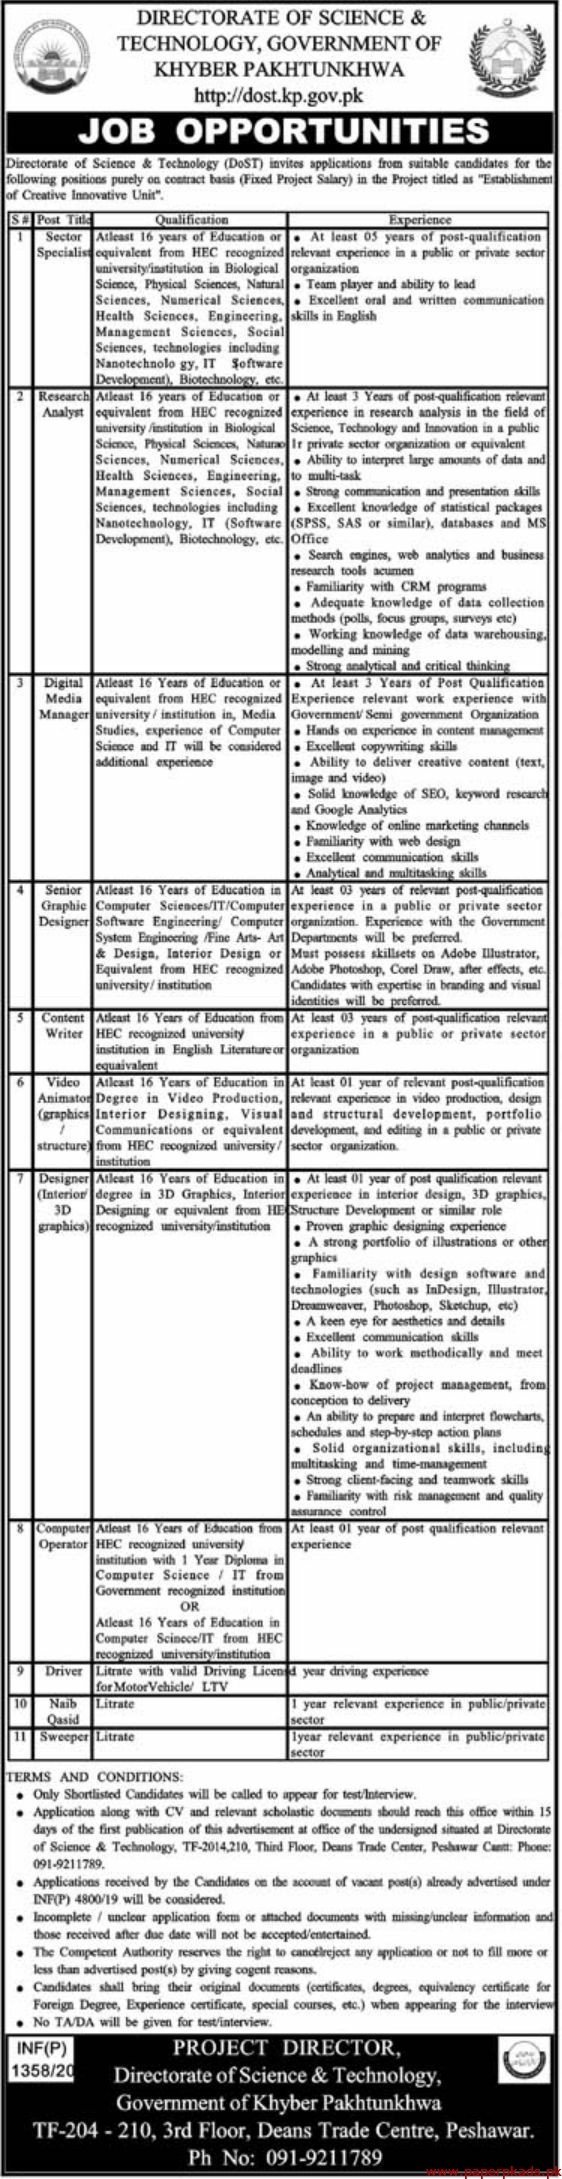 Directorate of Science & Technology DoST Jobs 2020 Latest